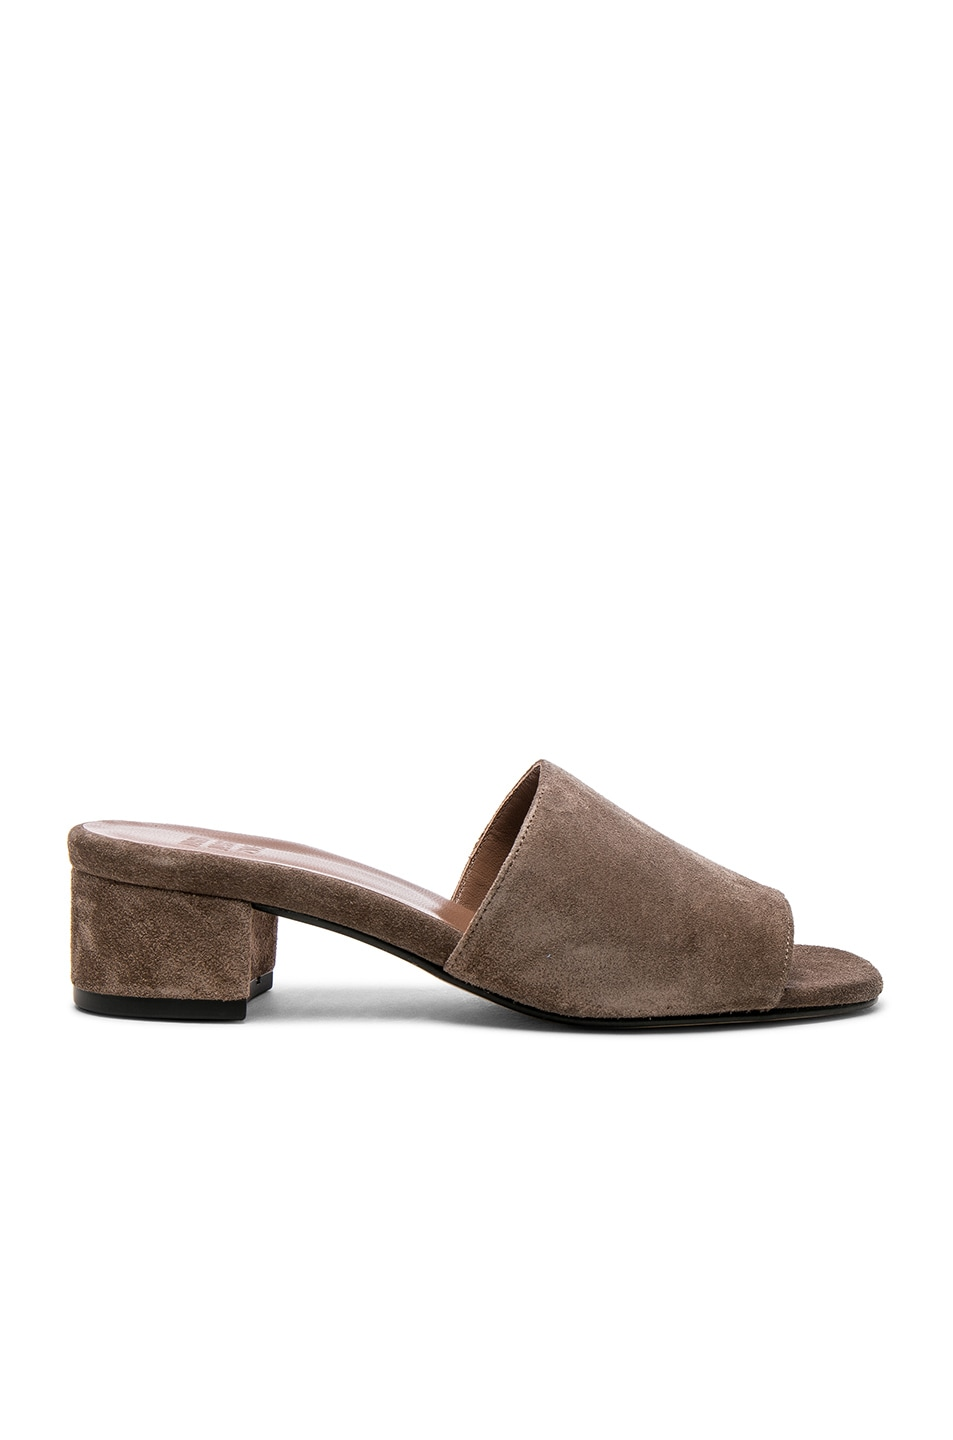 Image 1 of Maryam Nassir Zadeh for FWRD Suede Sophie Slides in Ash Suede